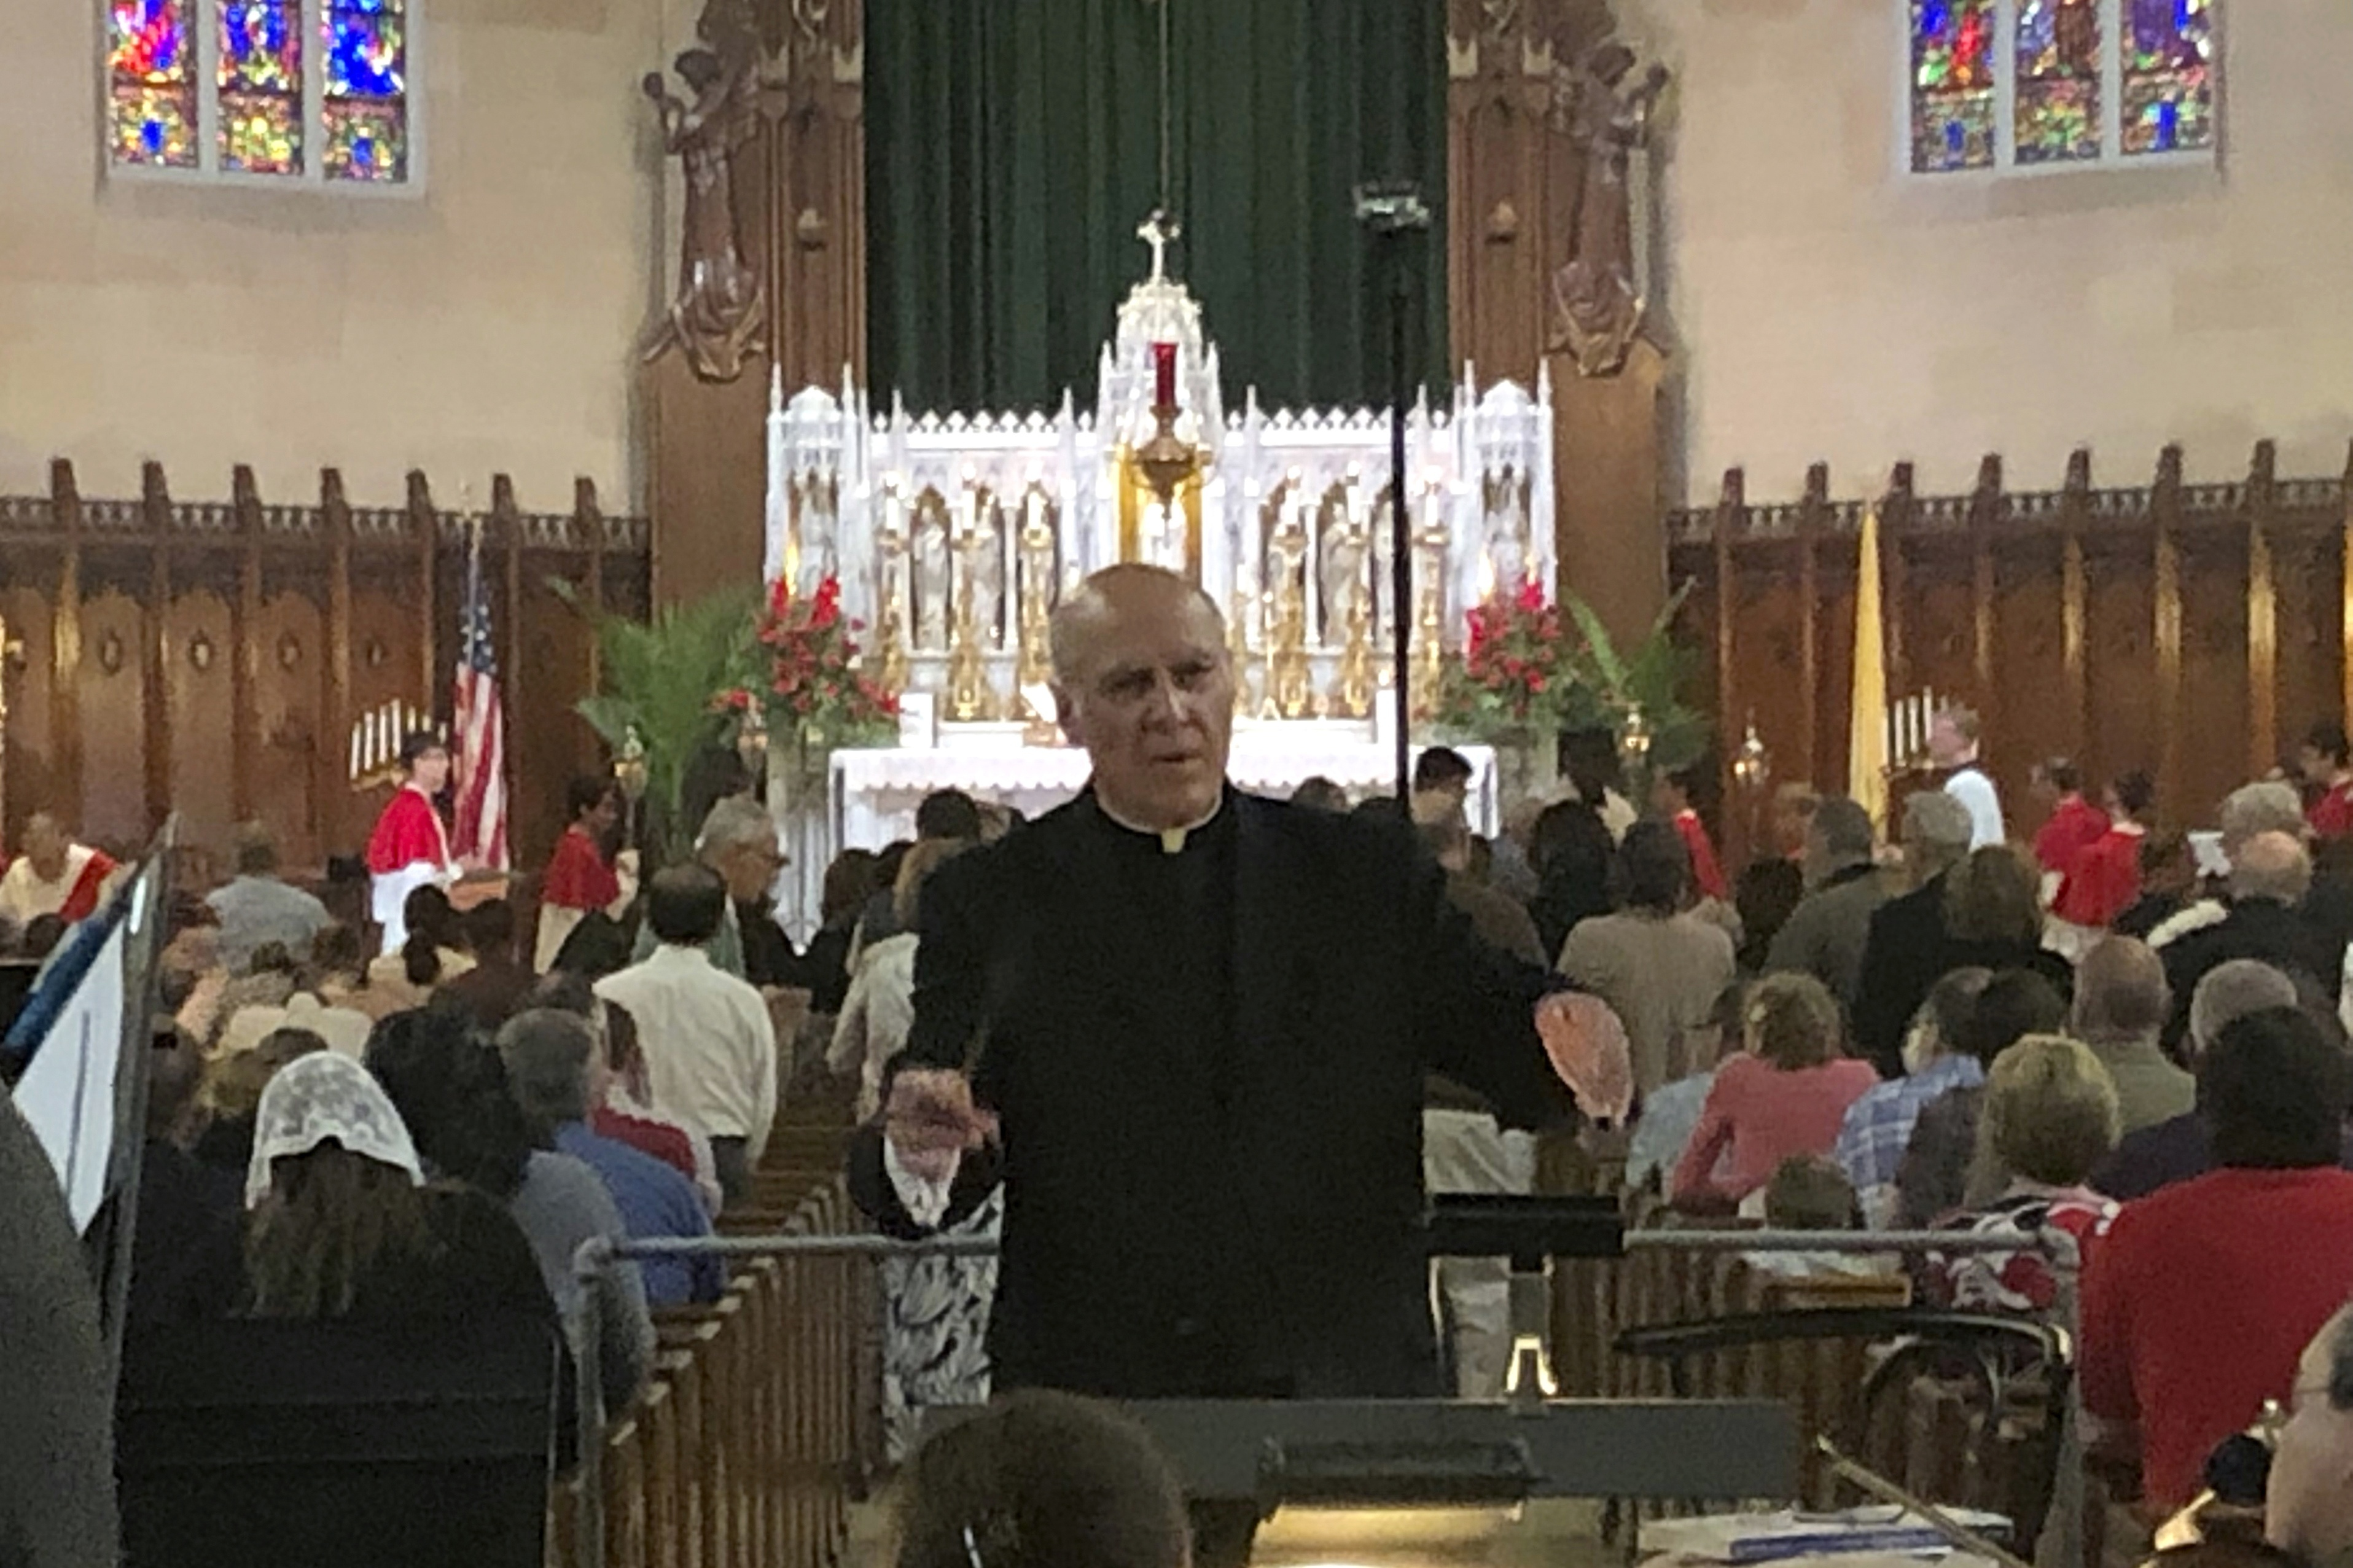 Prominent Detroit priest removed from pulpit